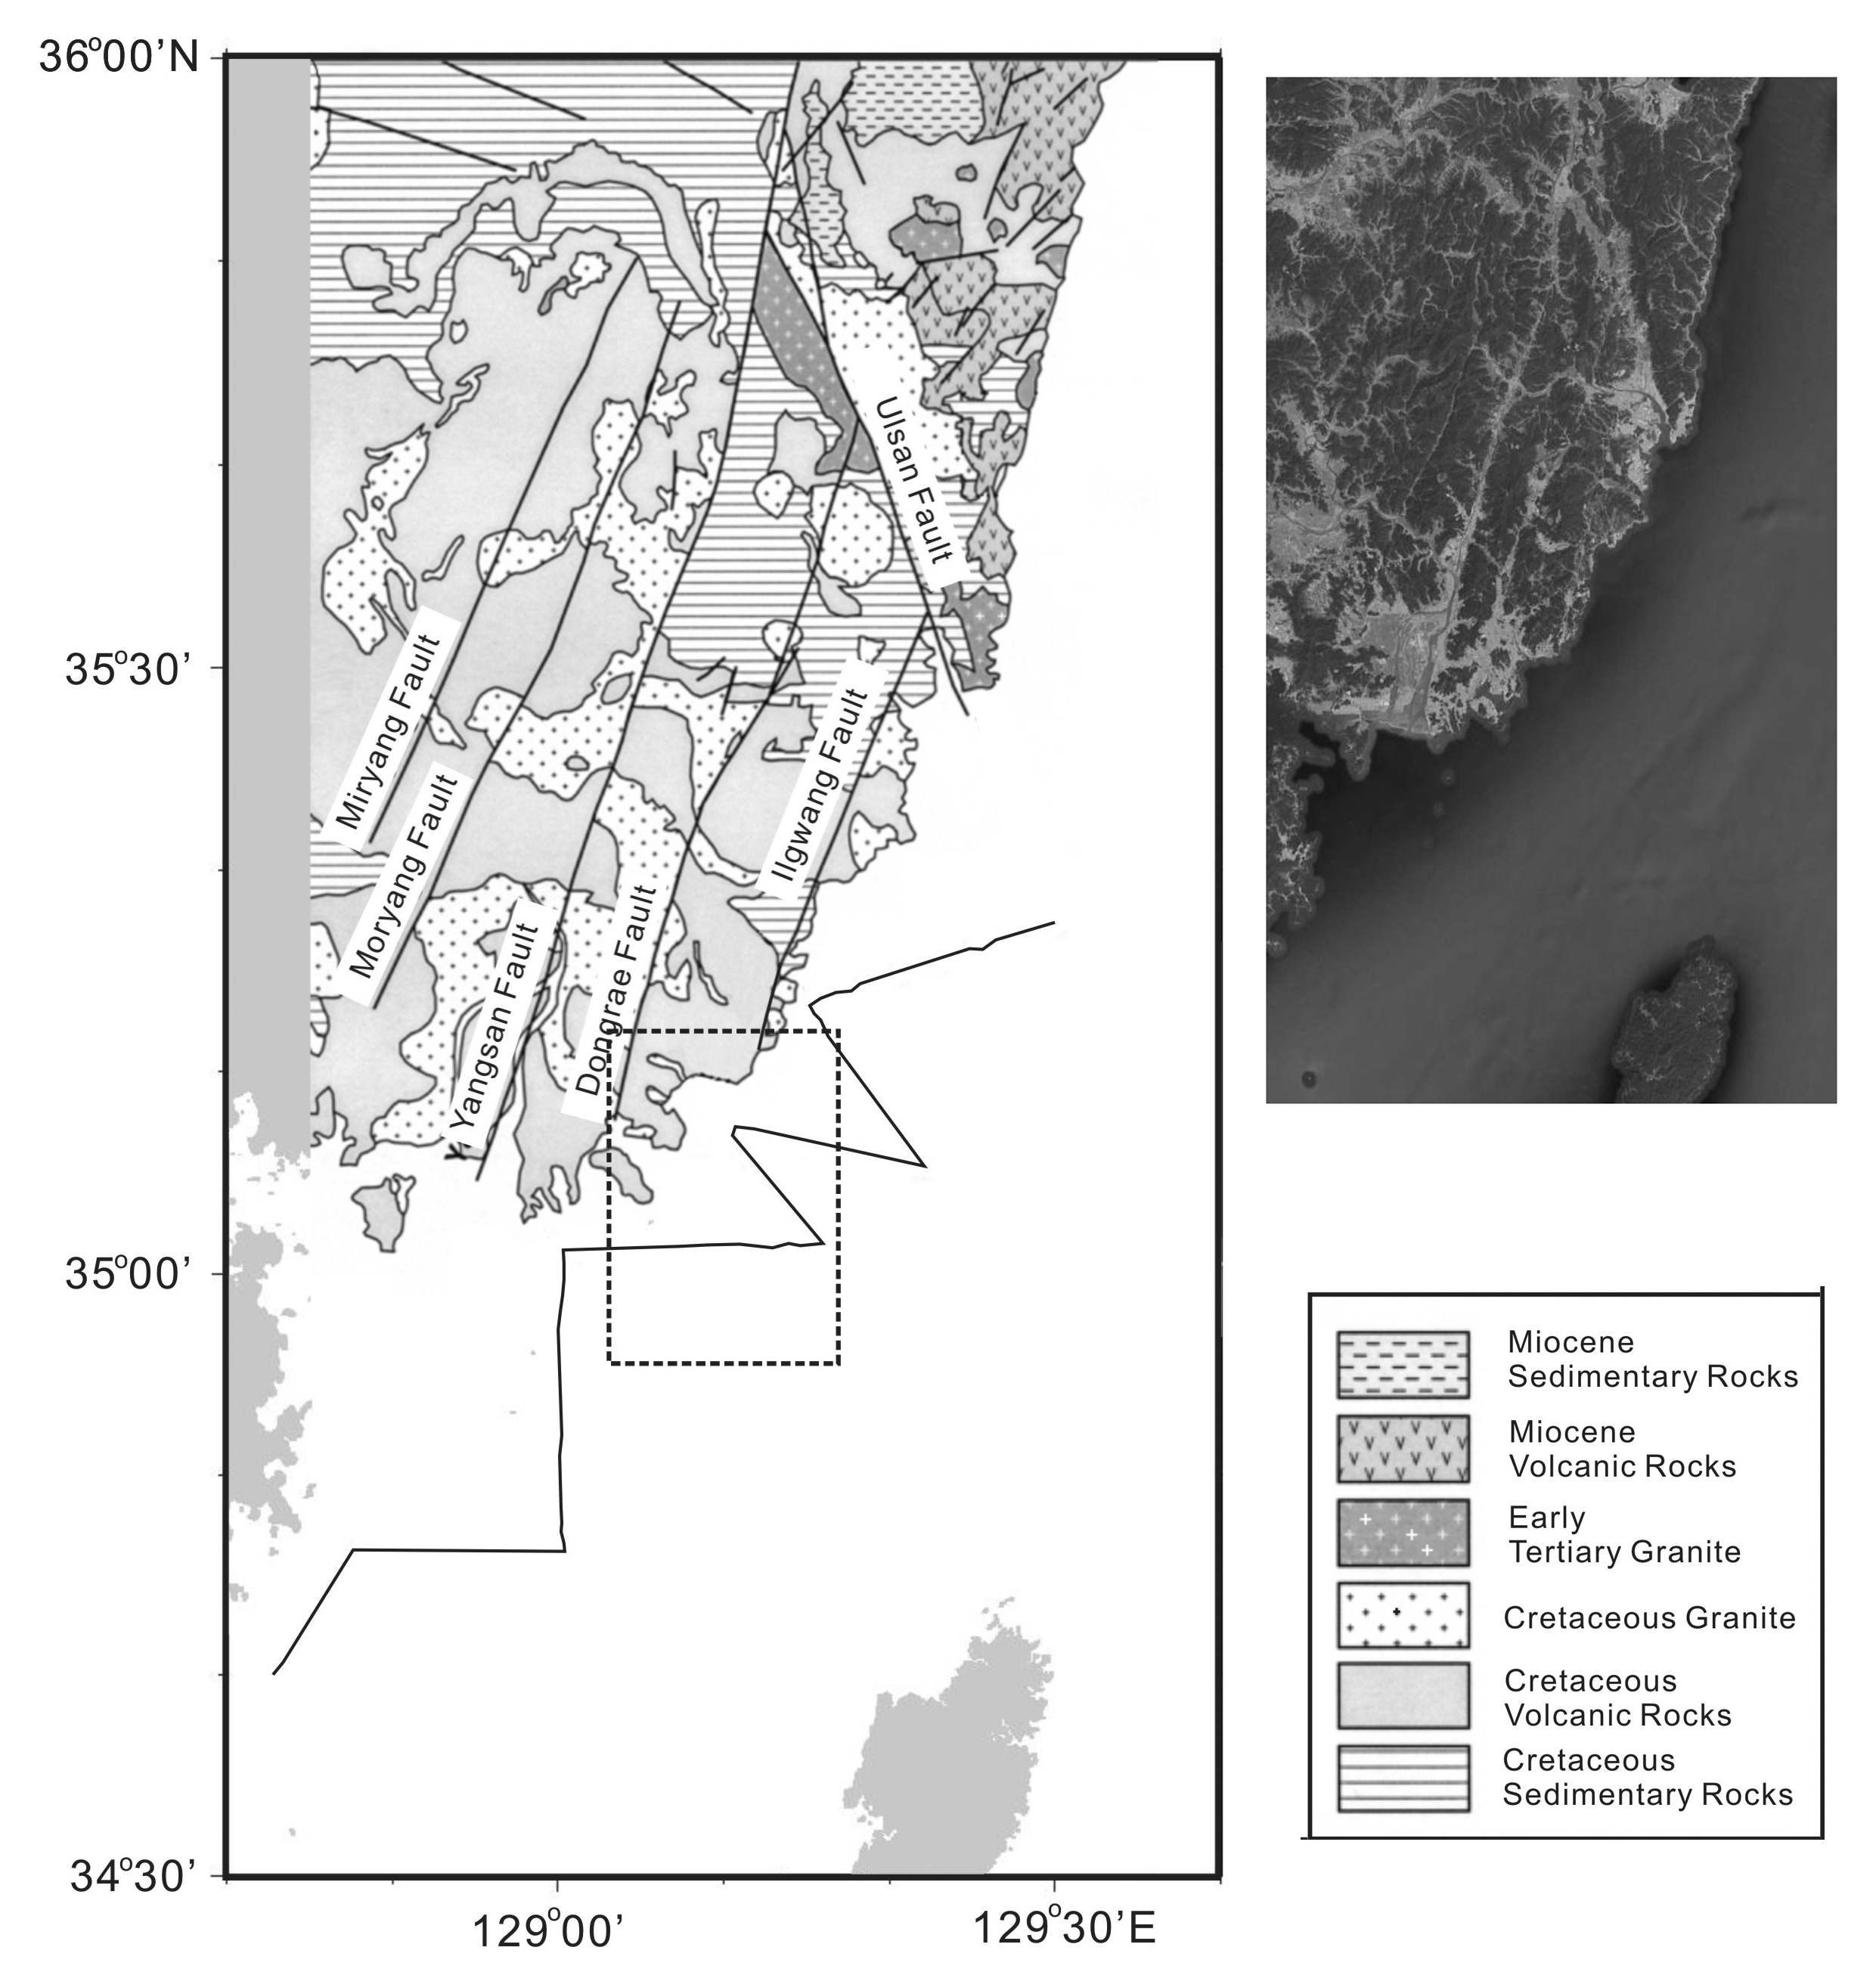 Fig. 3-2. Geologic map of the southeastern Korean Peninsula (modified from Ree et al., 2006).